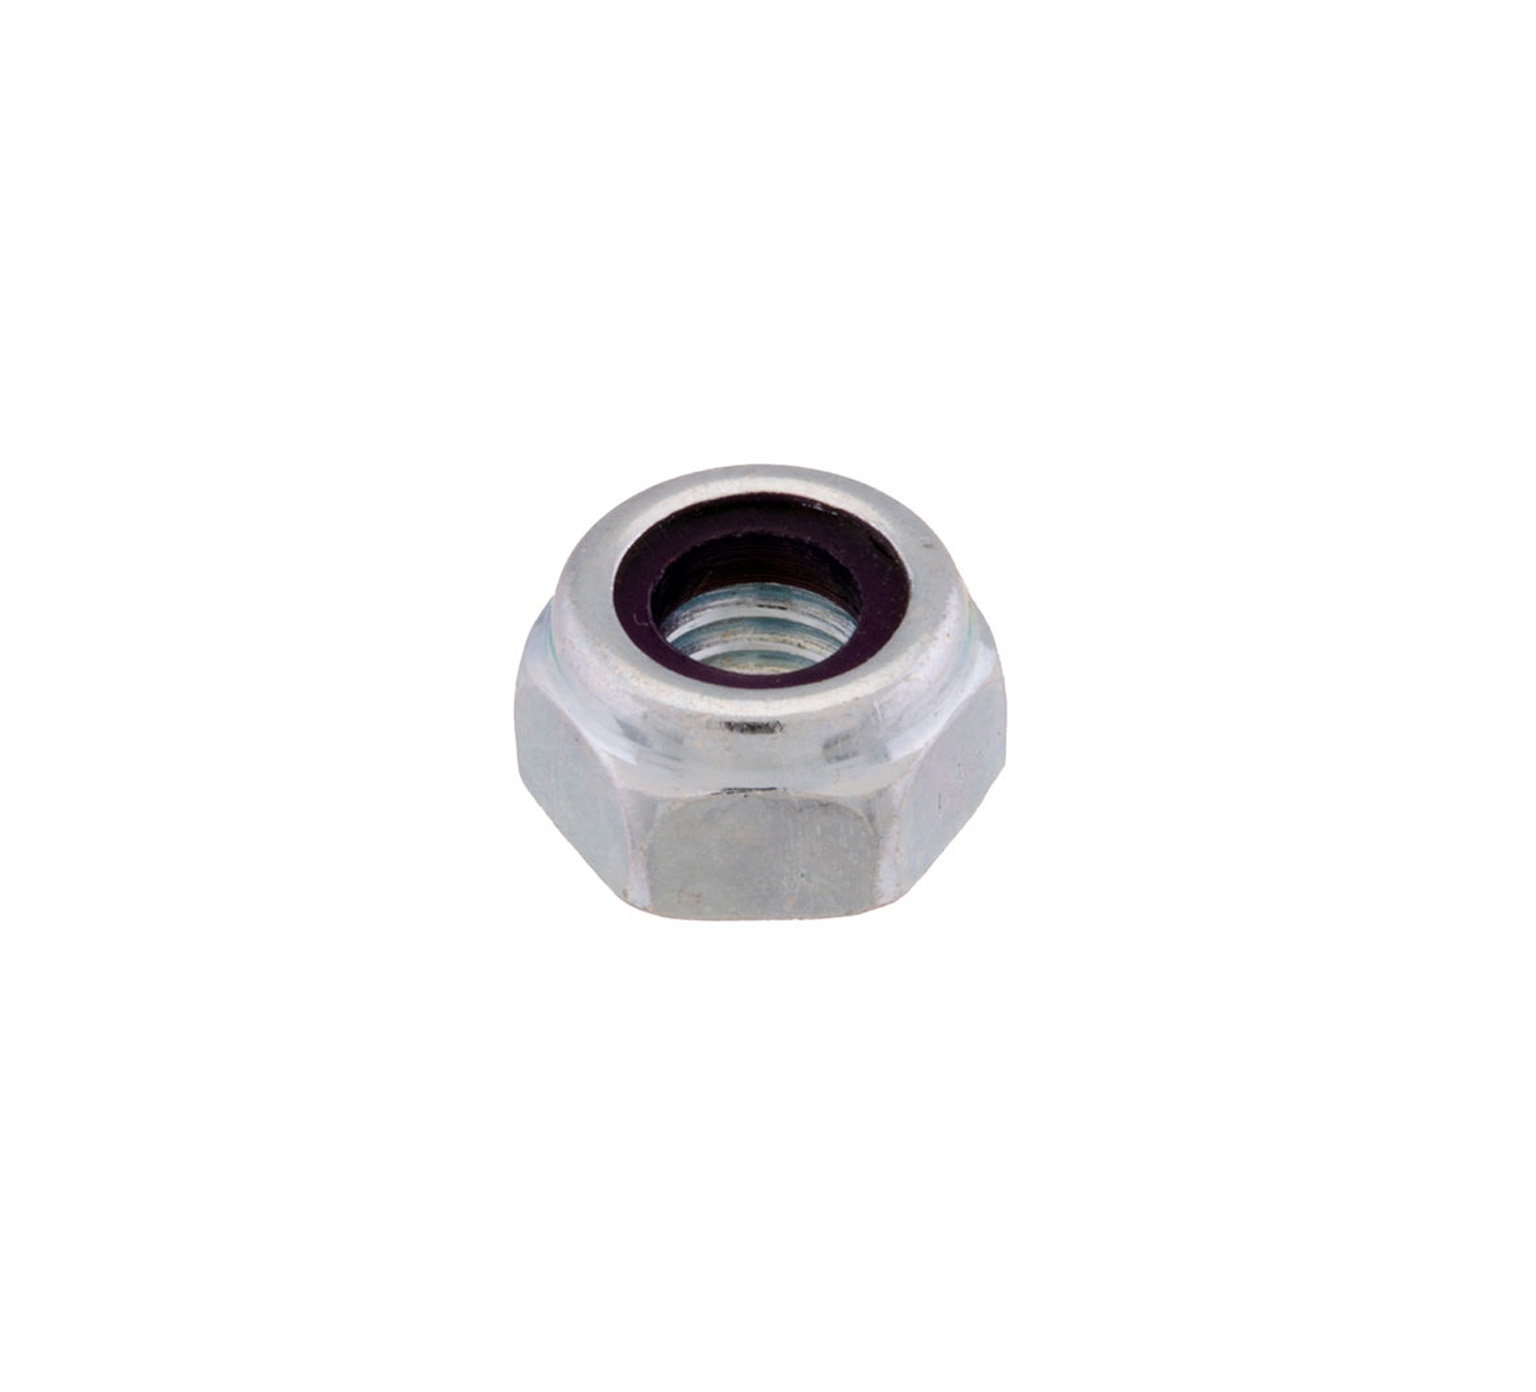 08708 Steel Hex Lock Nut - M6 Thread x 0.2 in alt 1